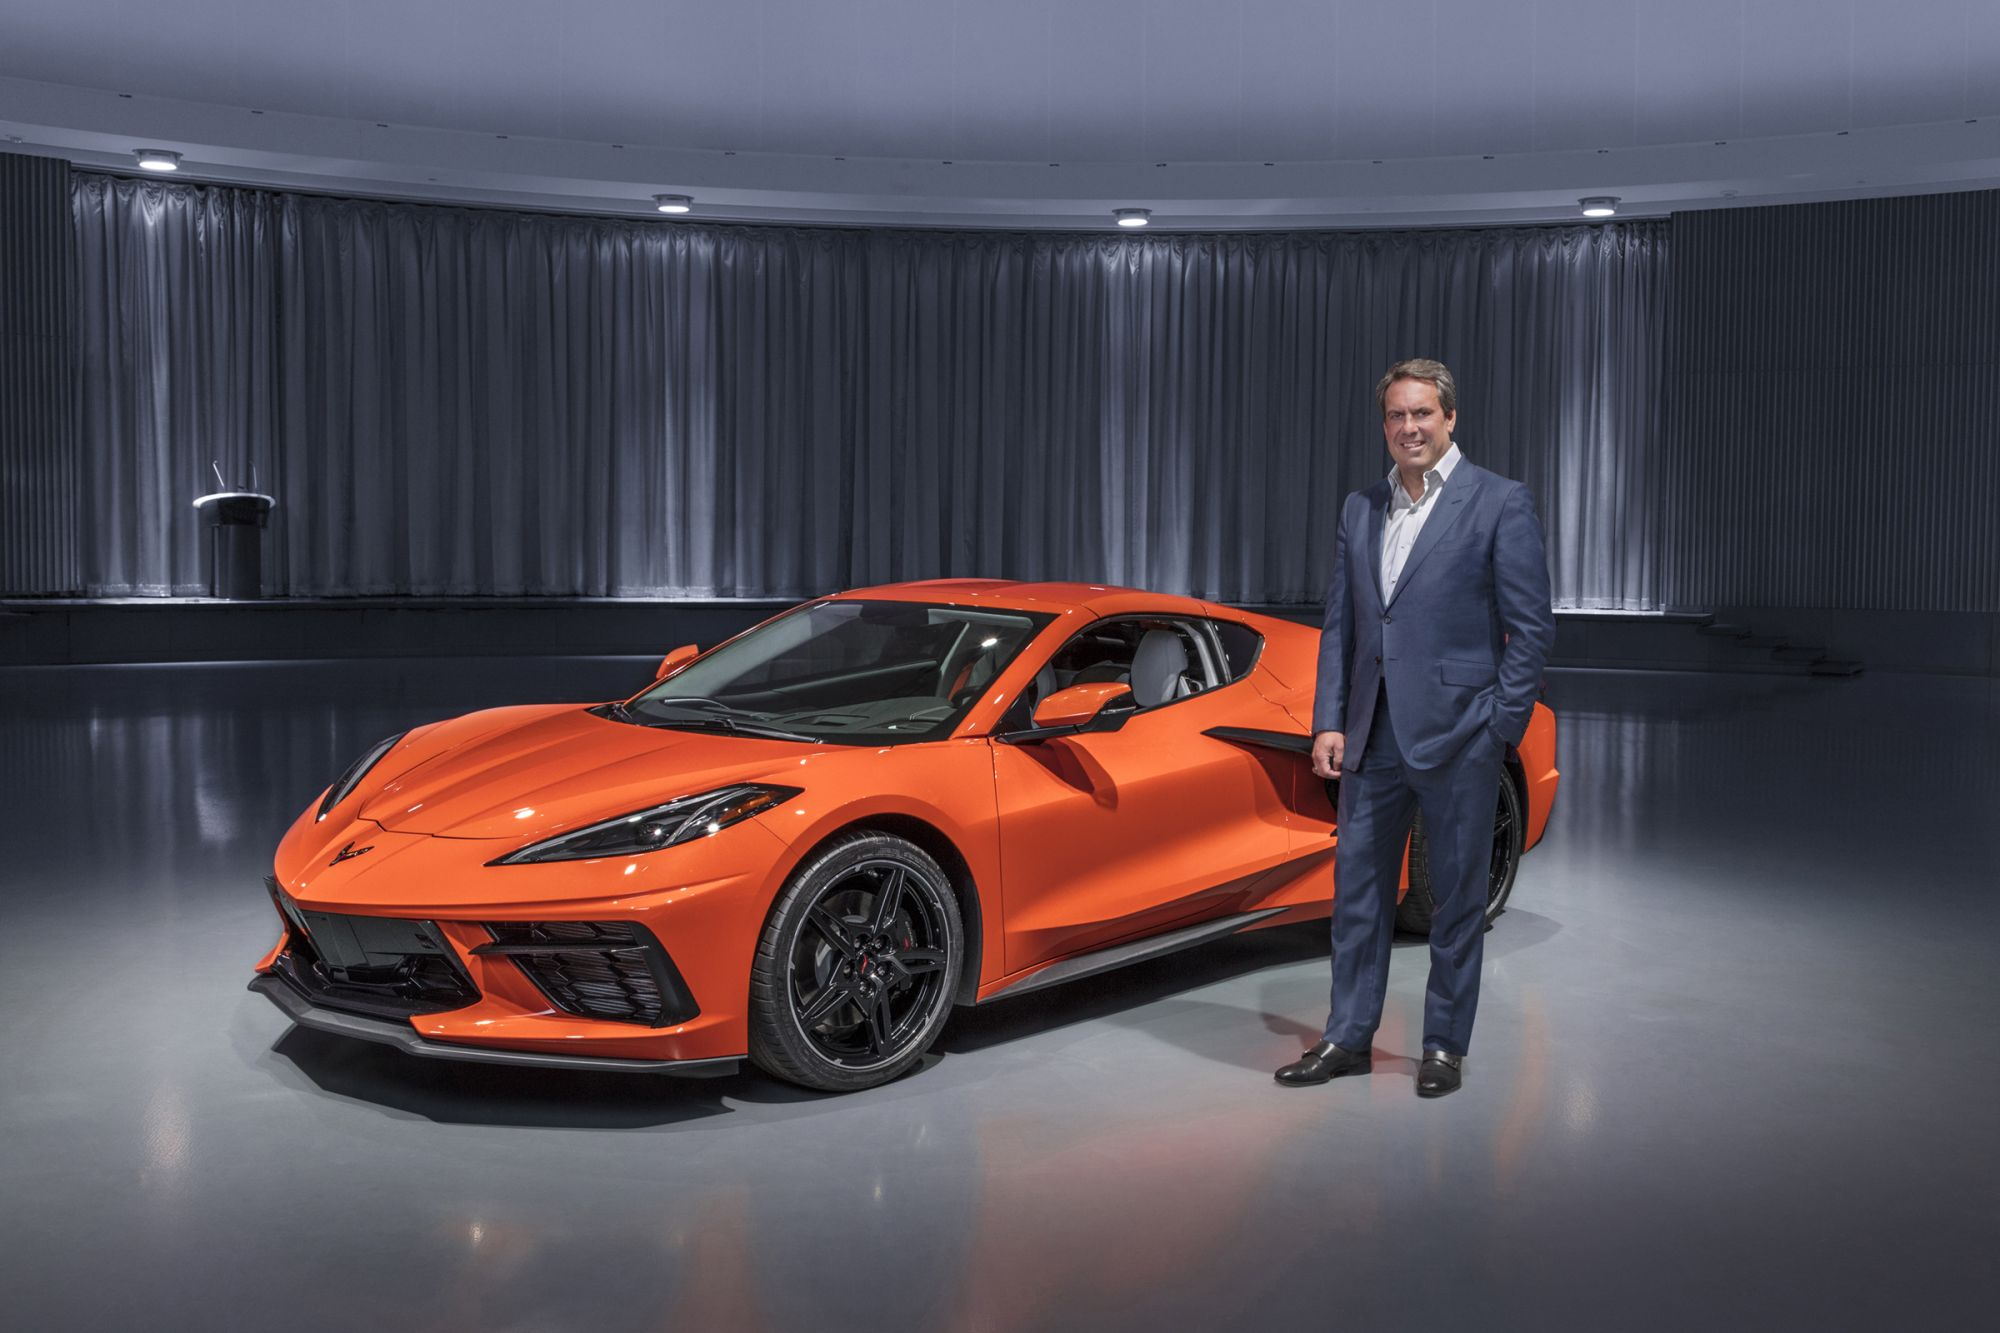 The Next-Generation Corvette Is Radically Different. Here's What Led GM President Mark Reuss to Revamp an Icon.